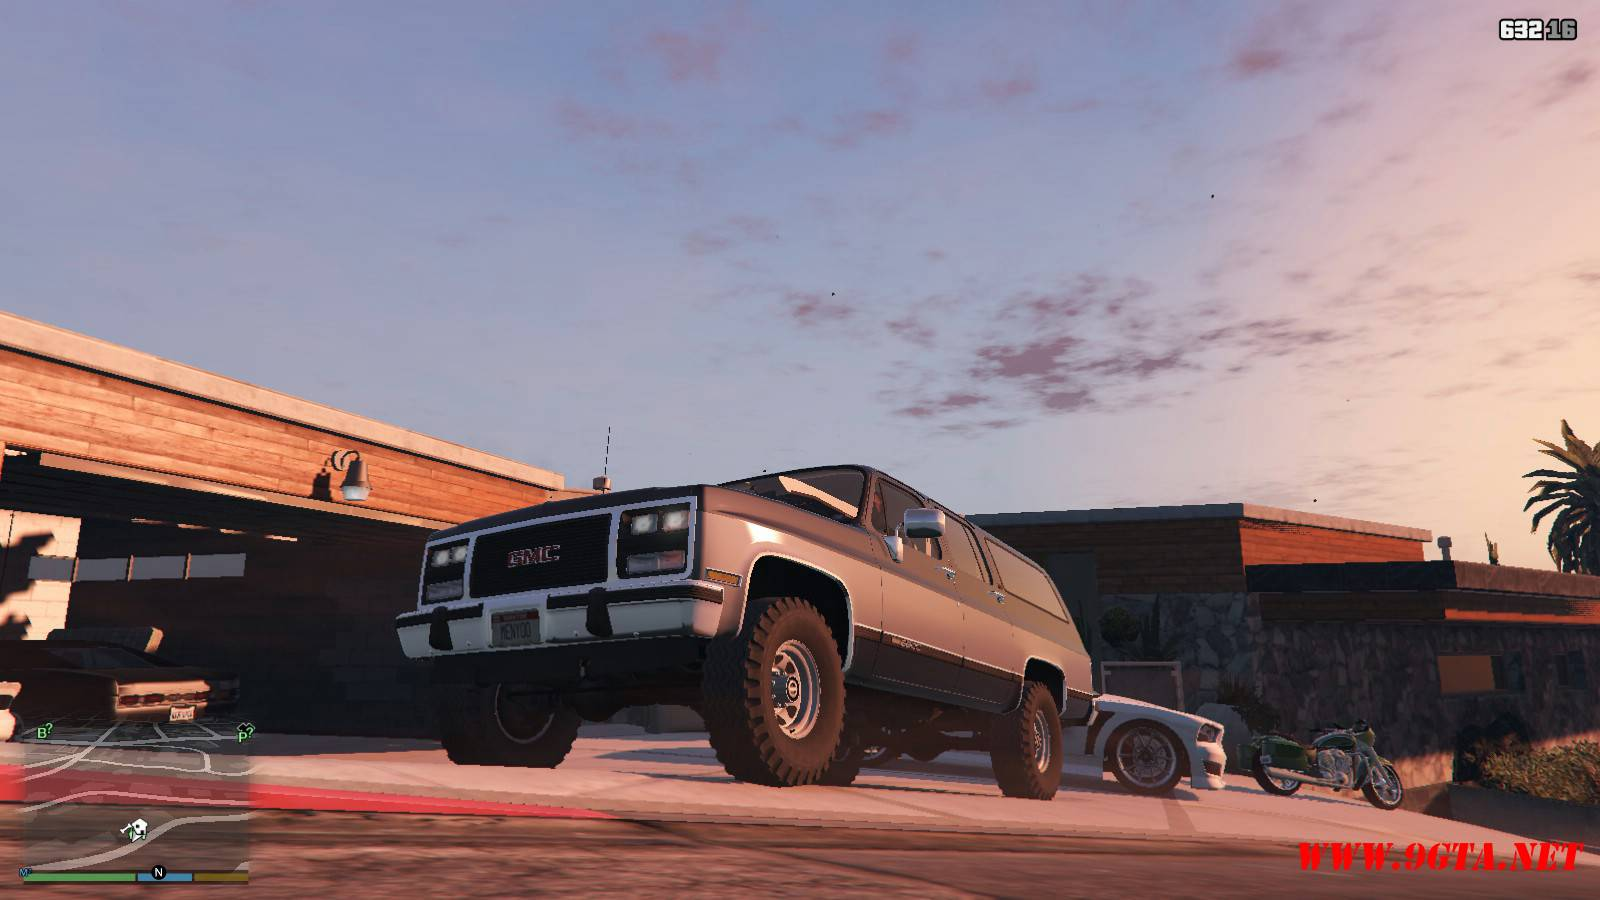 1989 GMC Suburban Mod For GTA 5 (6)